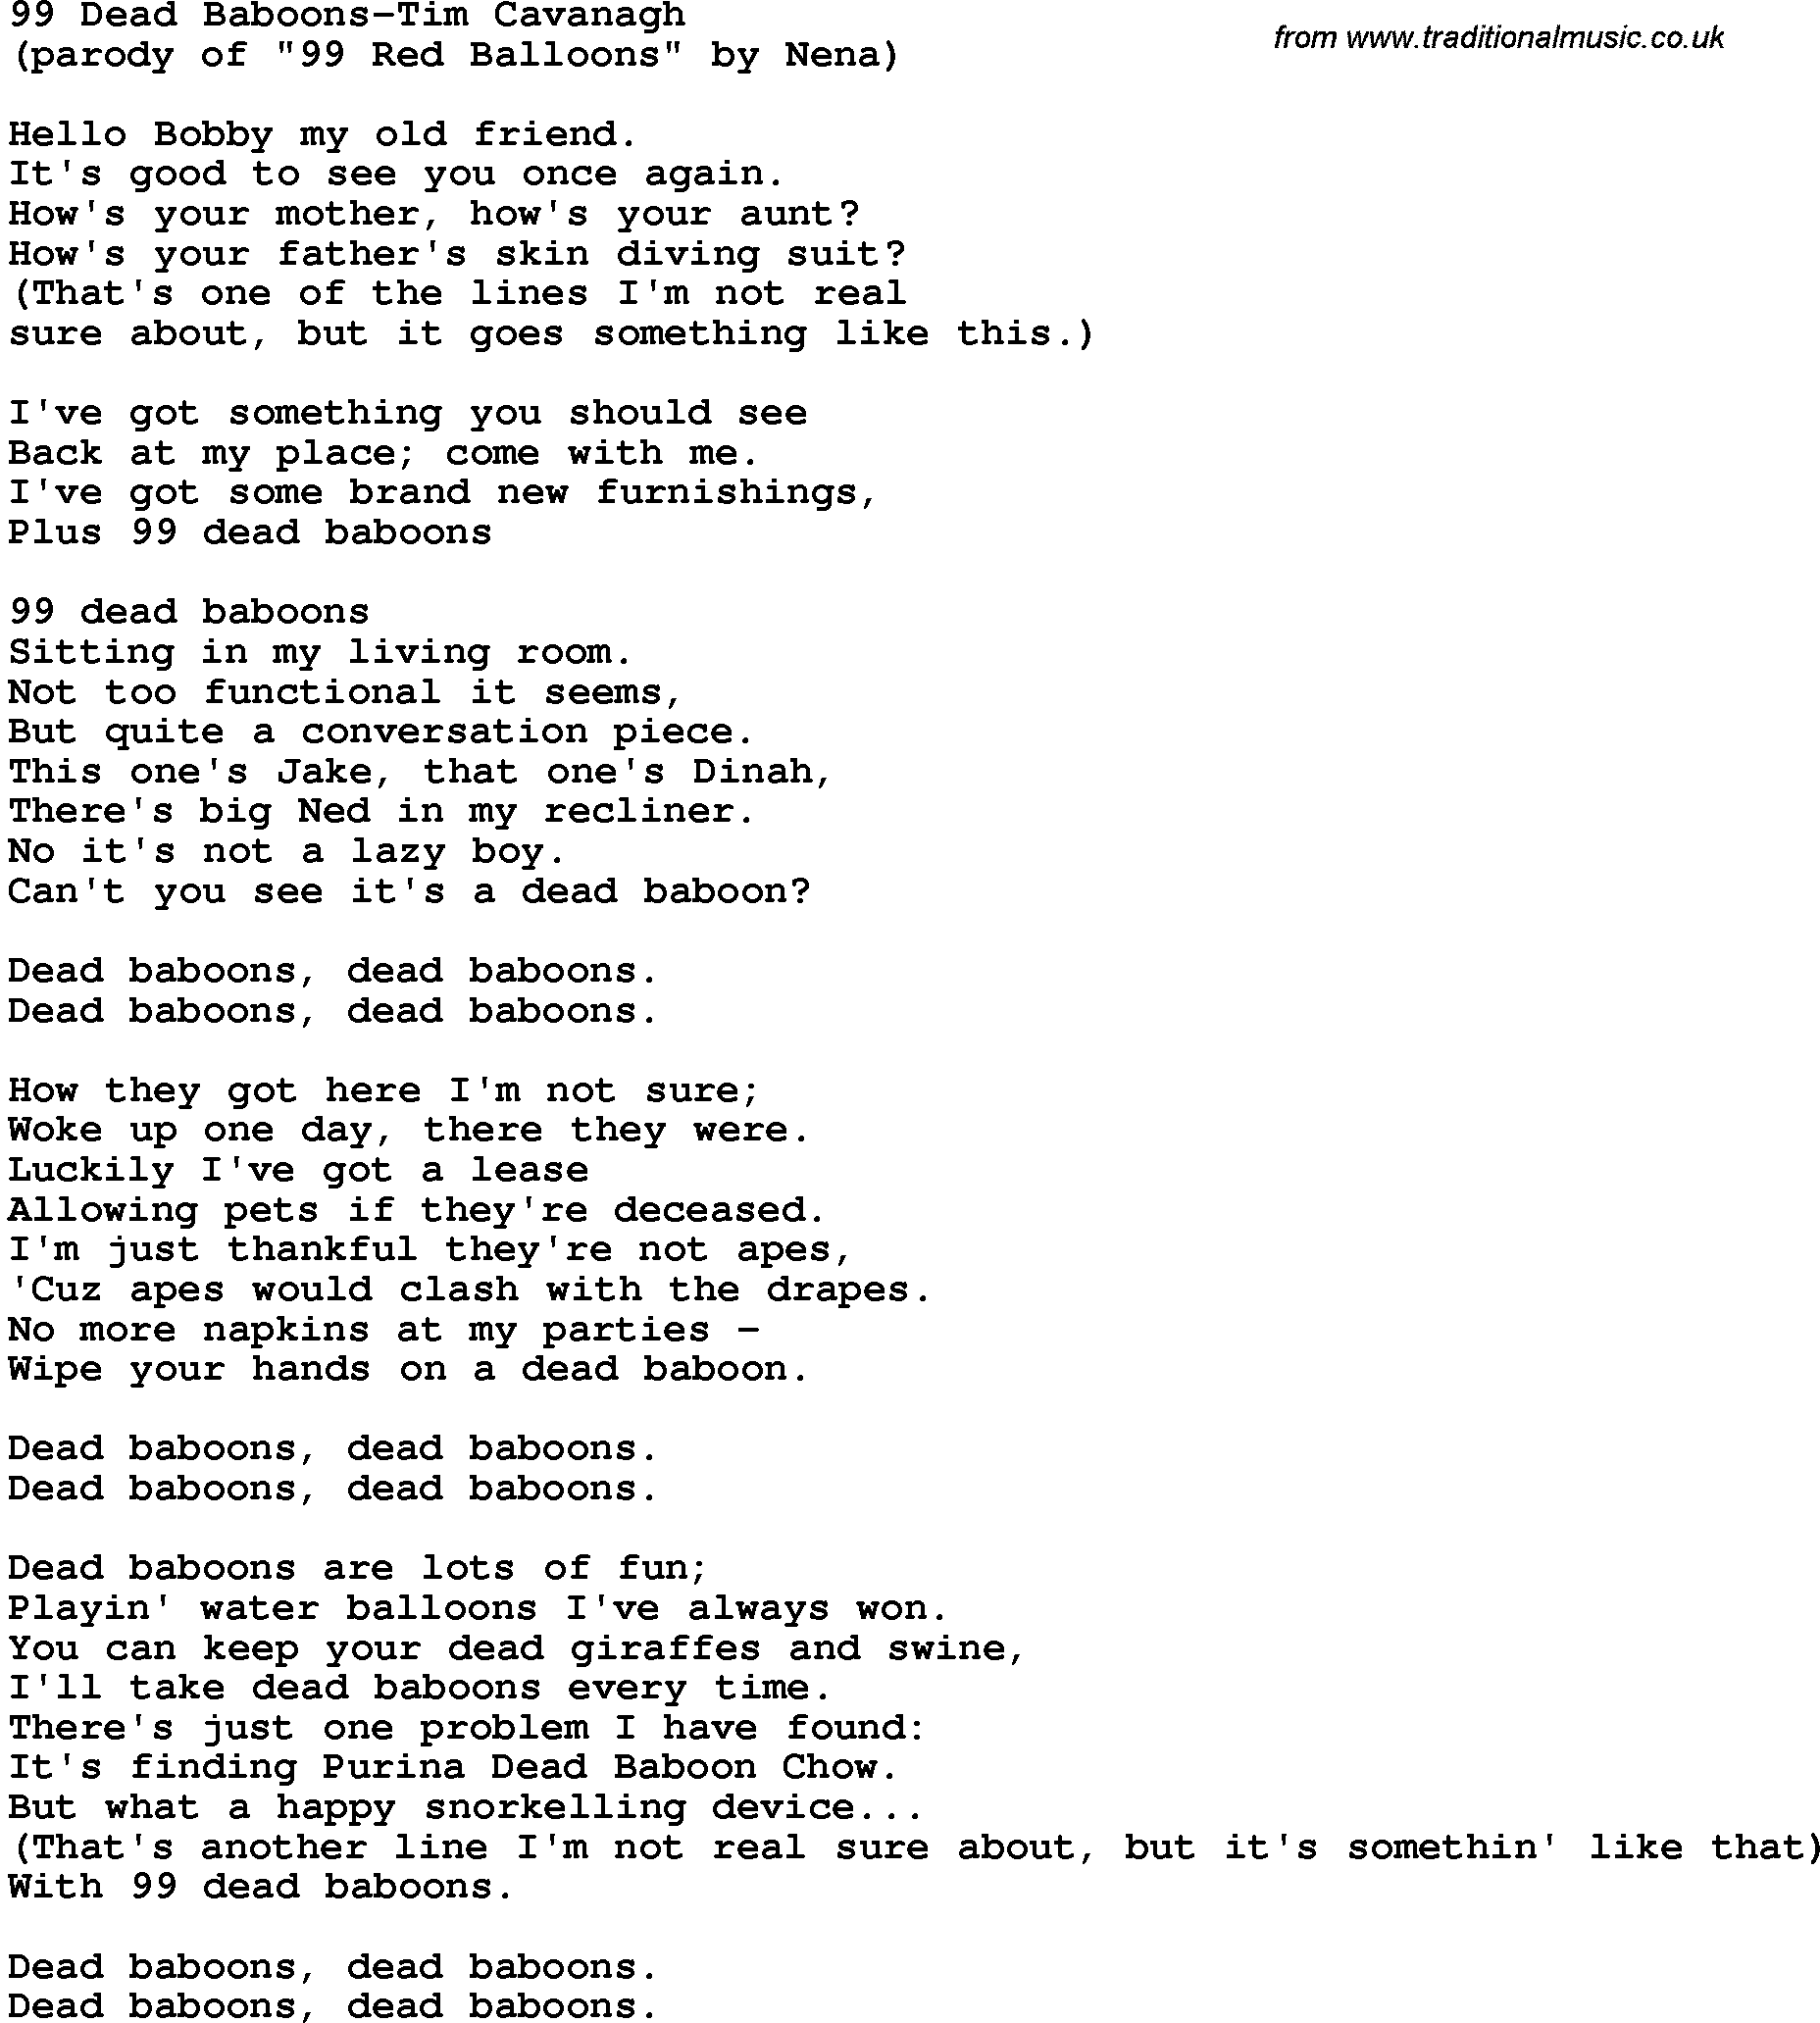 Novelty Song 99 Dead Baboons Tim Cavanagh Lyrics